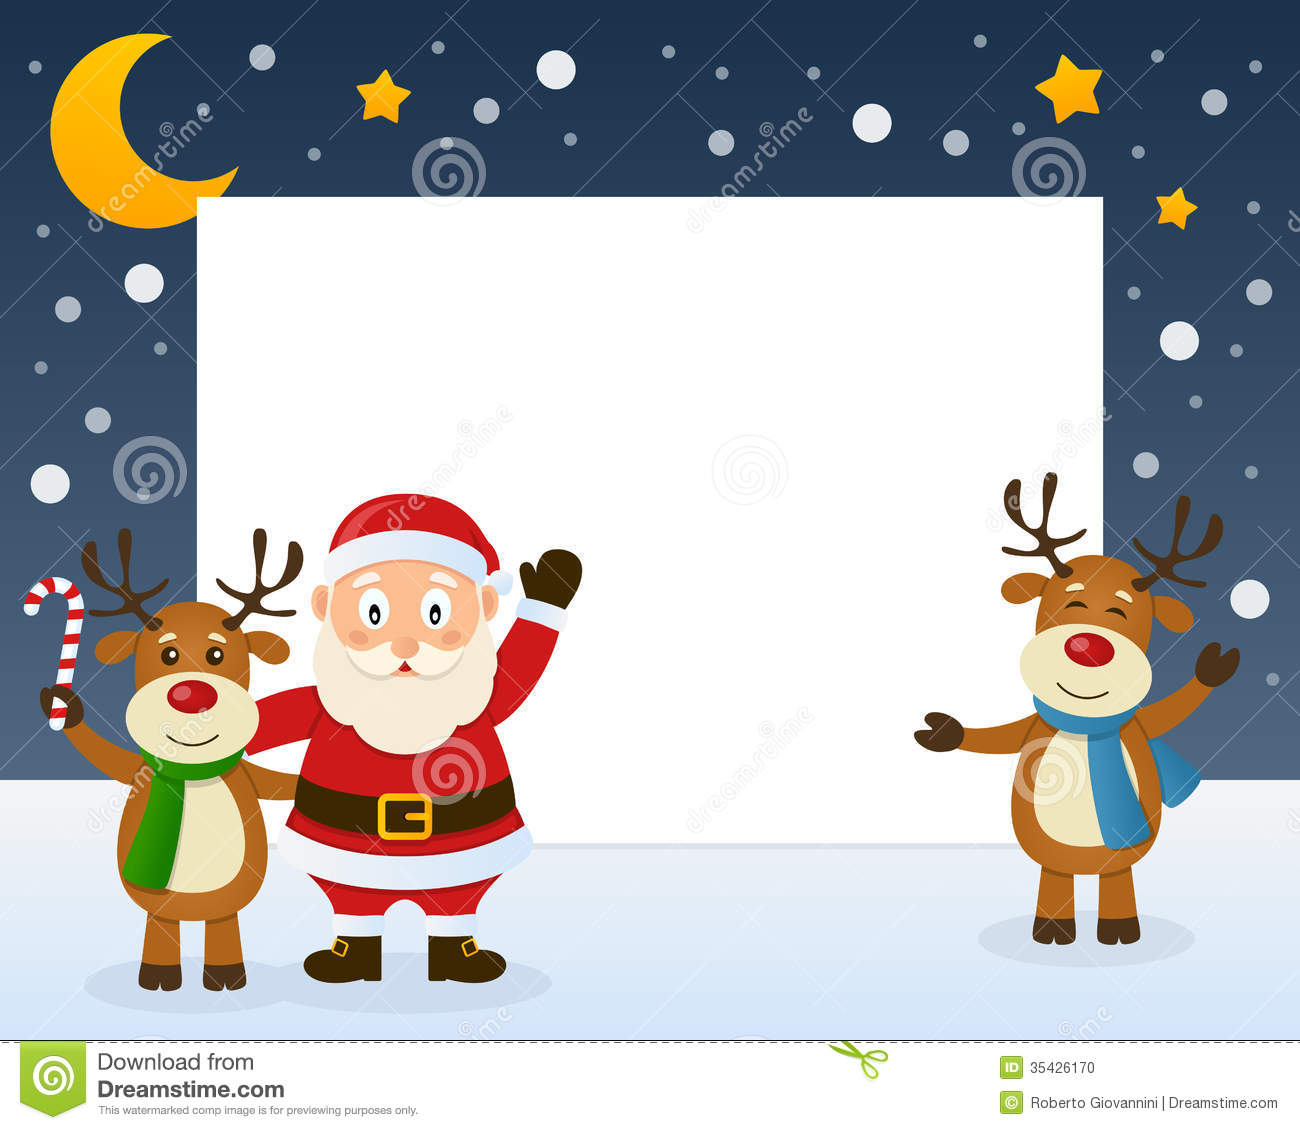 Santa Claus And Reindeer Frame Stock Photo - Image: 35426170